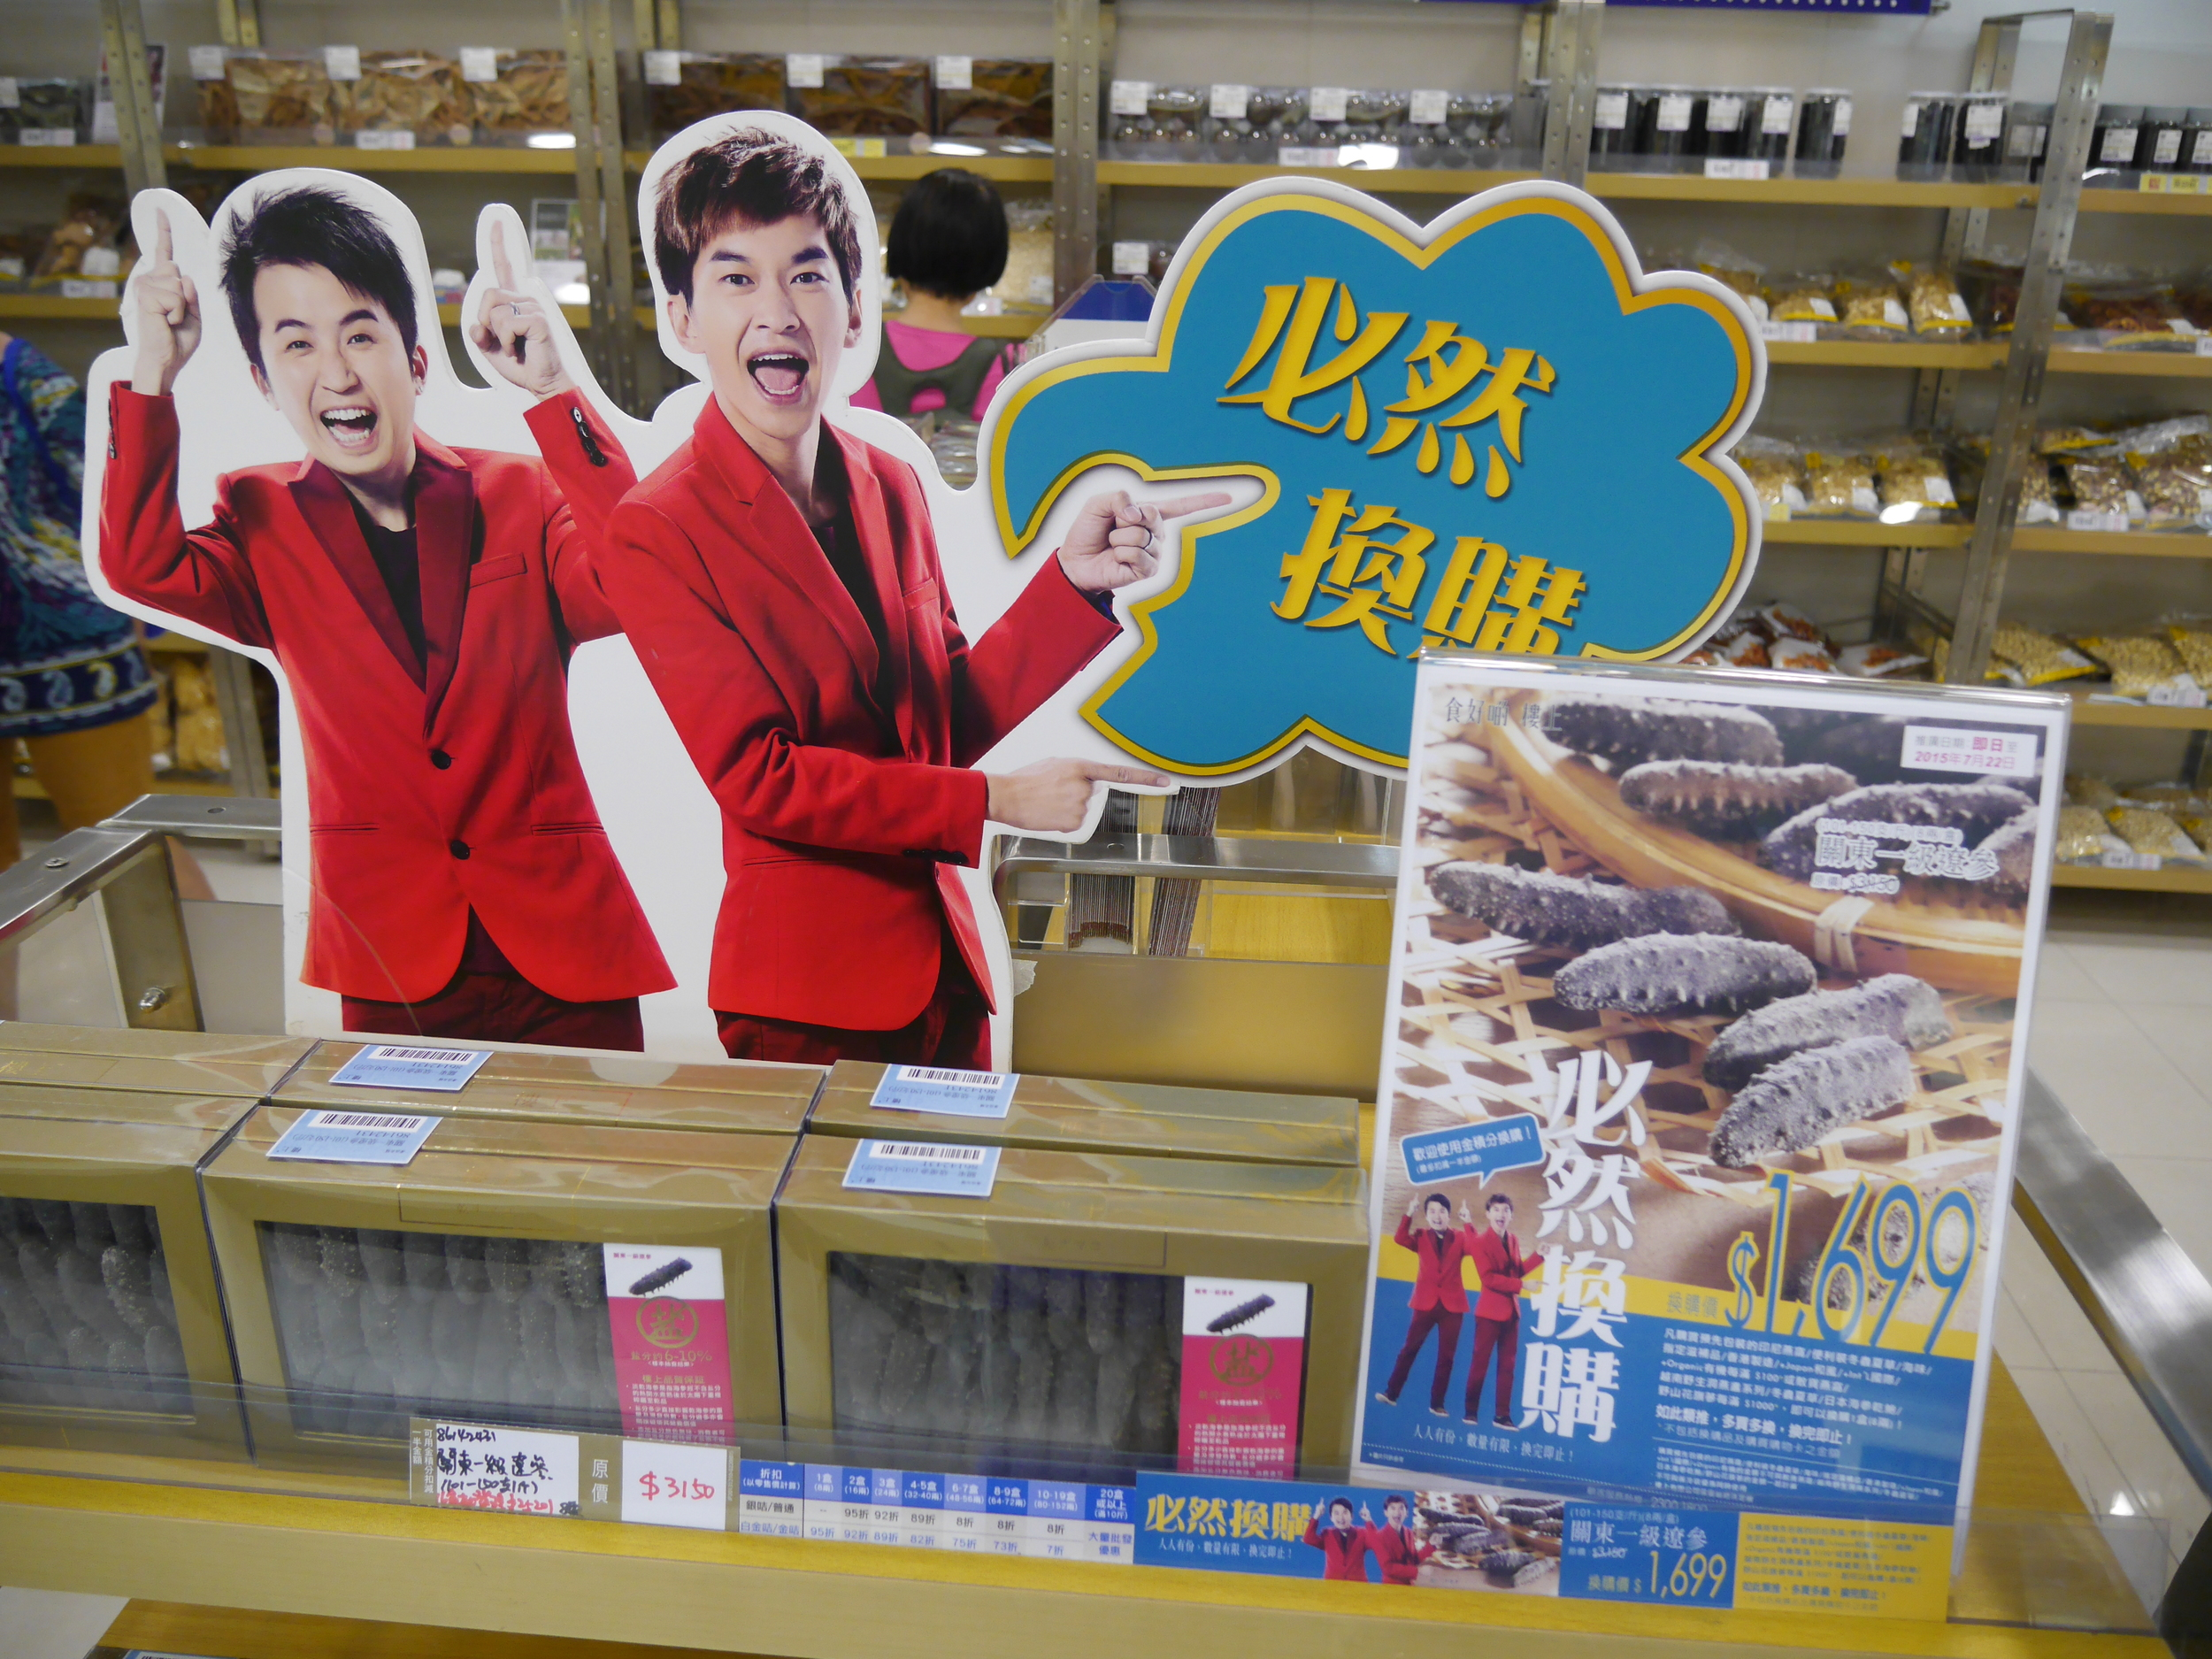 Isn't everyone this excited about dried sea cucumber? Especially when it's only like $400/box!